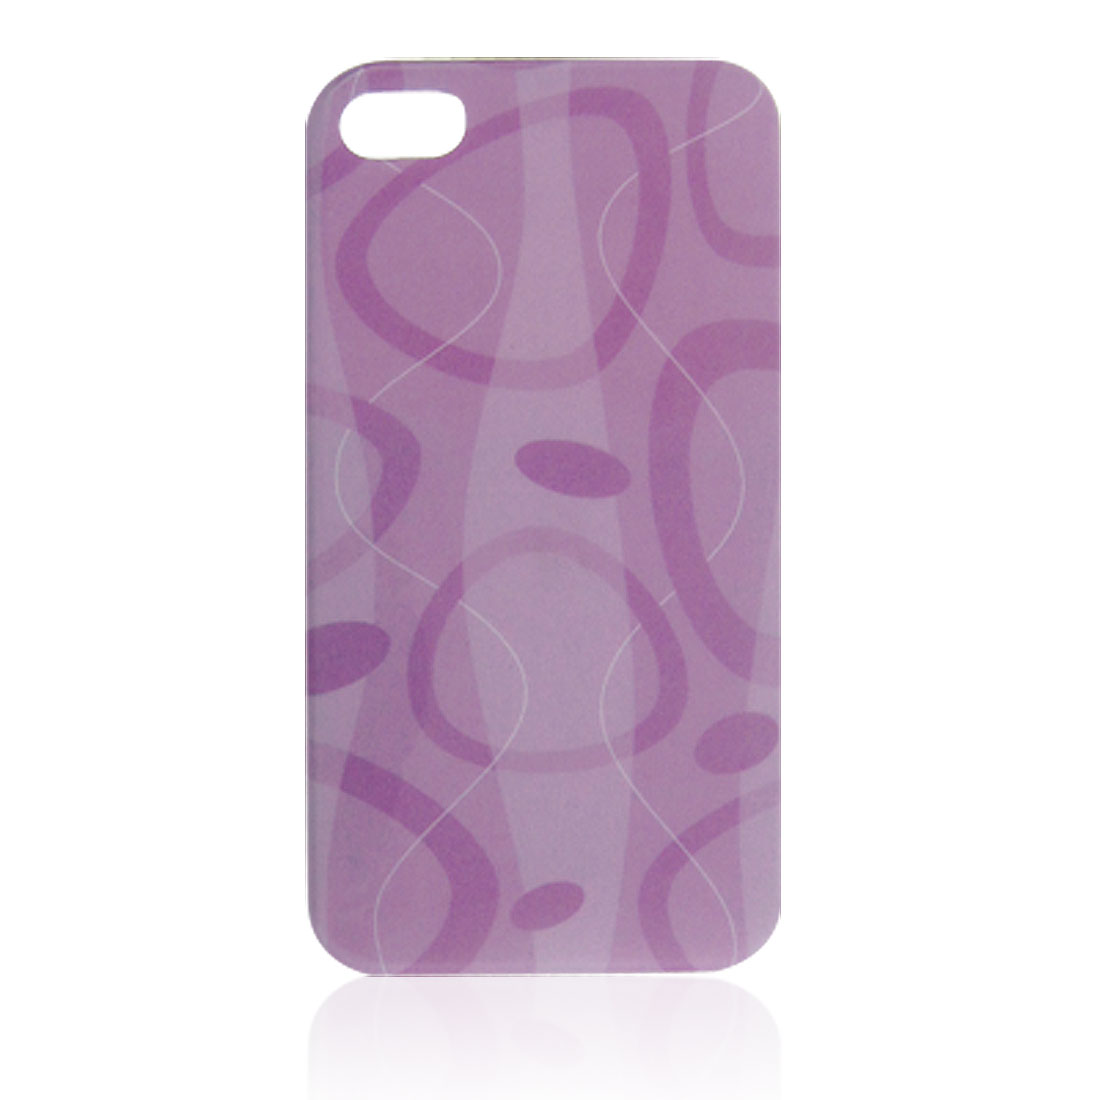 Assorted Color Wave Line Detail Mixed Pattern IMD Hard Plastic Back Shell Case for iPhone 4 4G 4S